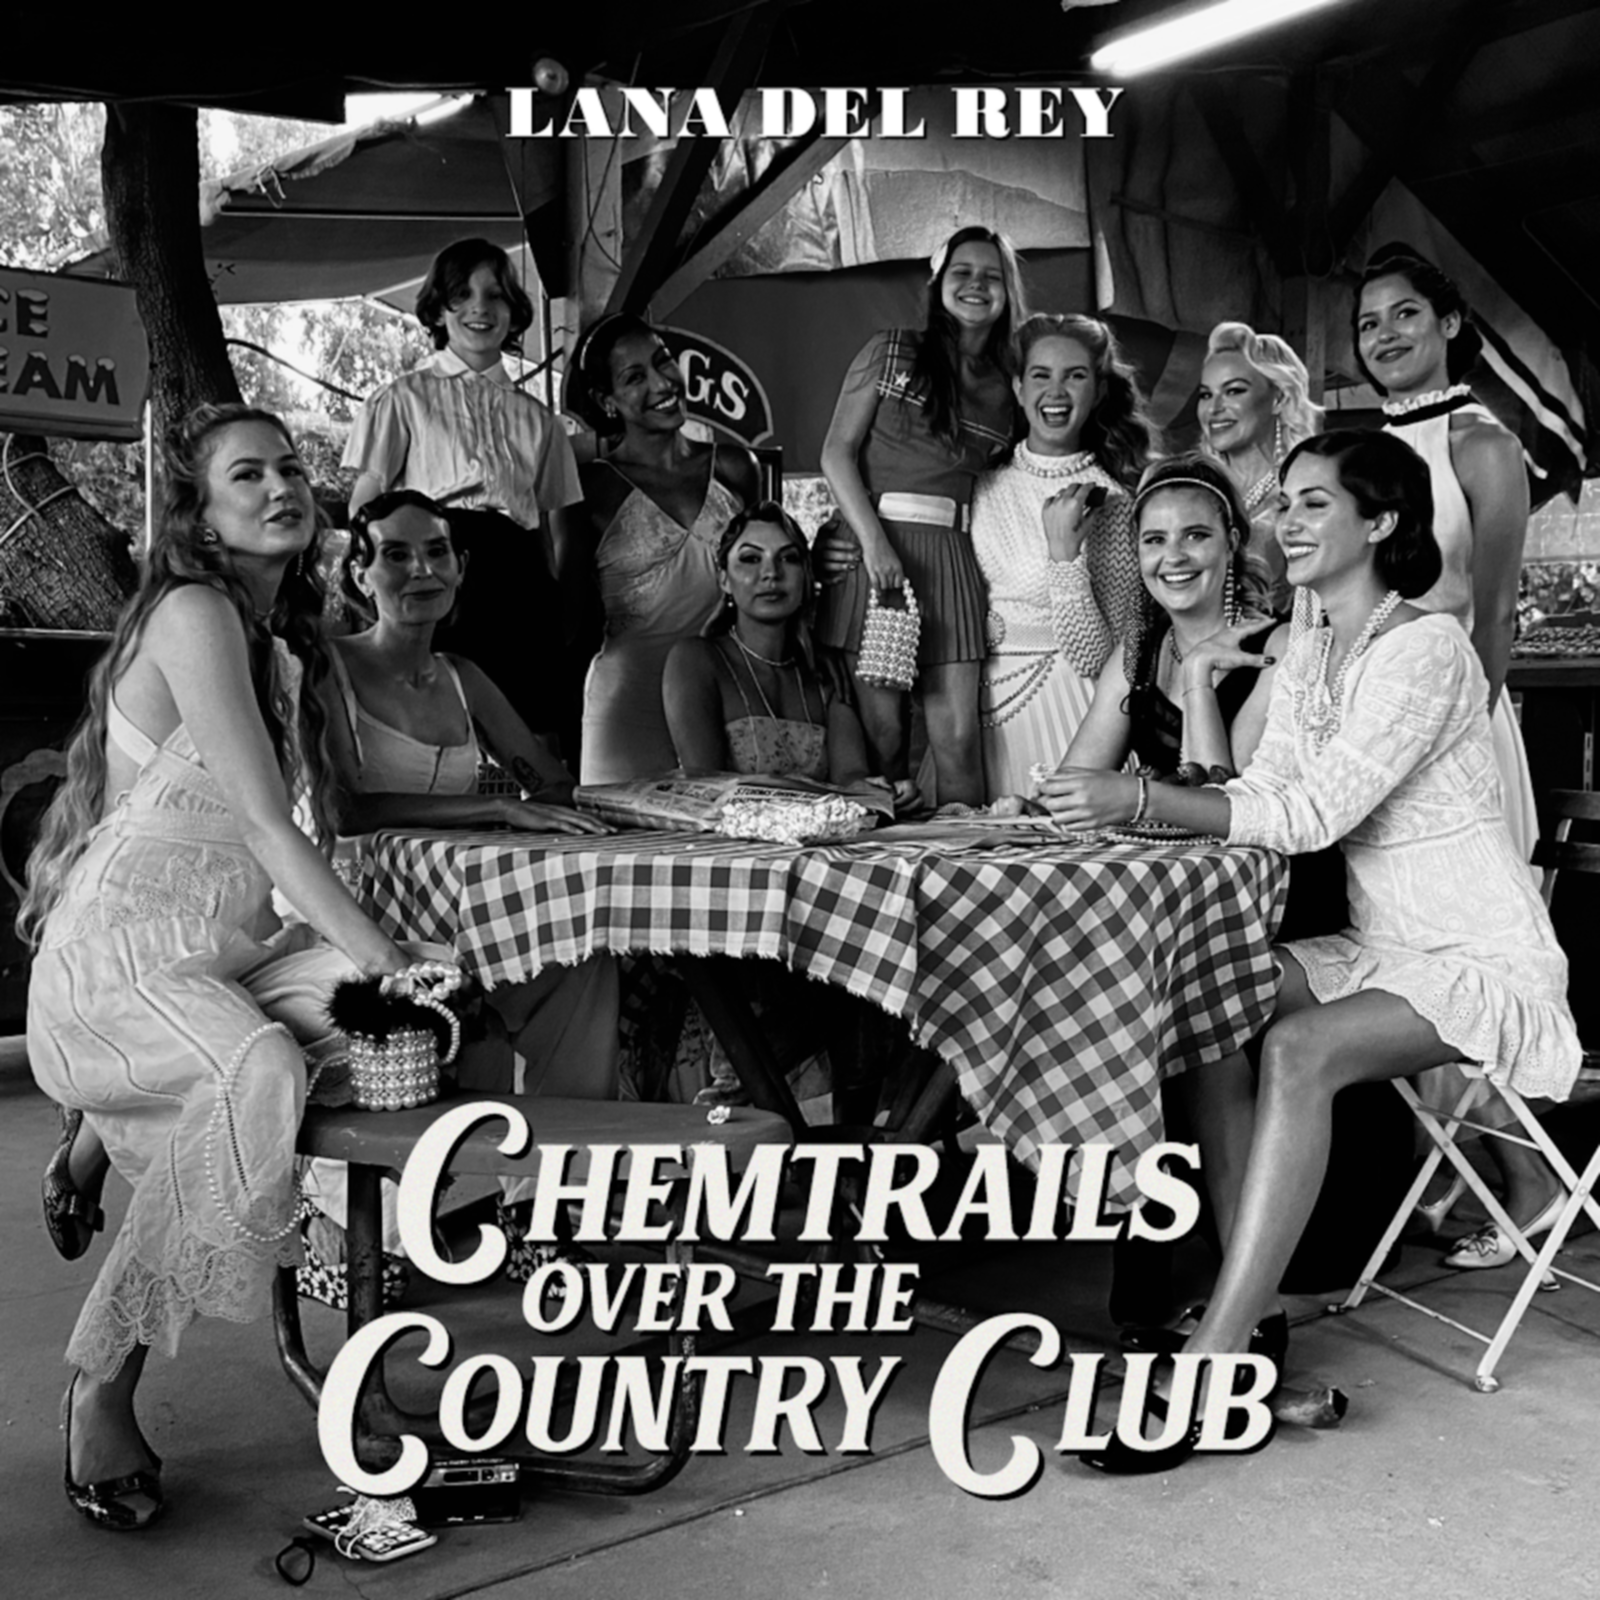 On Chemtrails Over the Country Club, Lana Del Rey moves the focus away from men